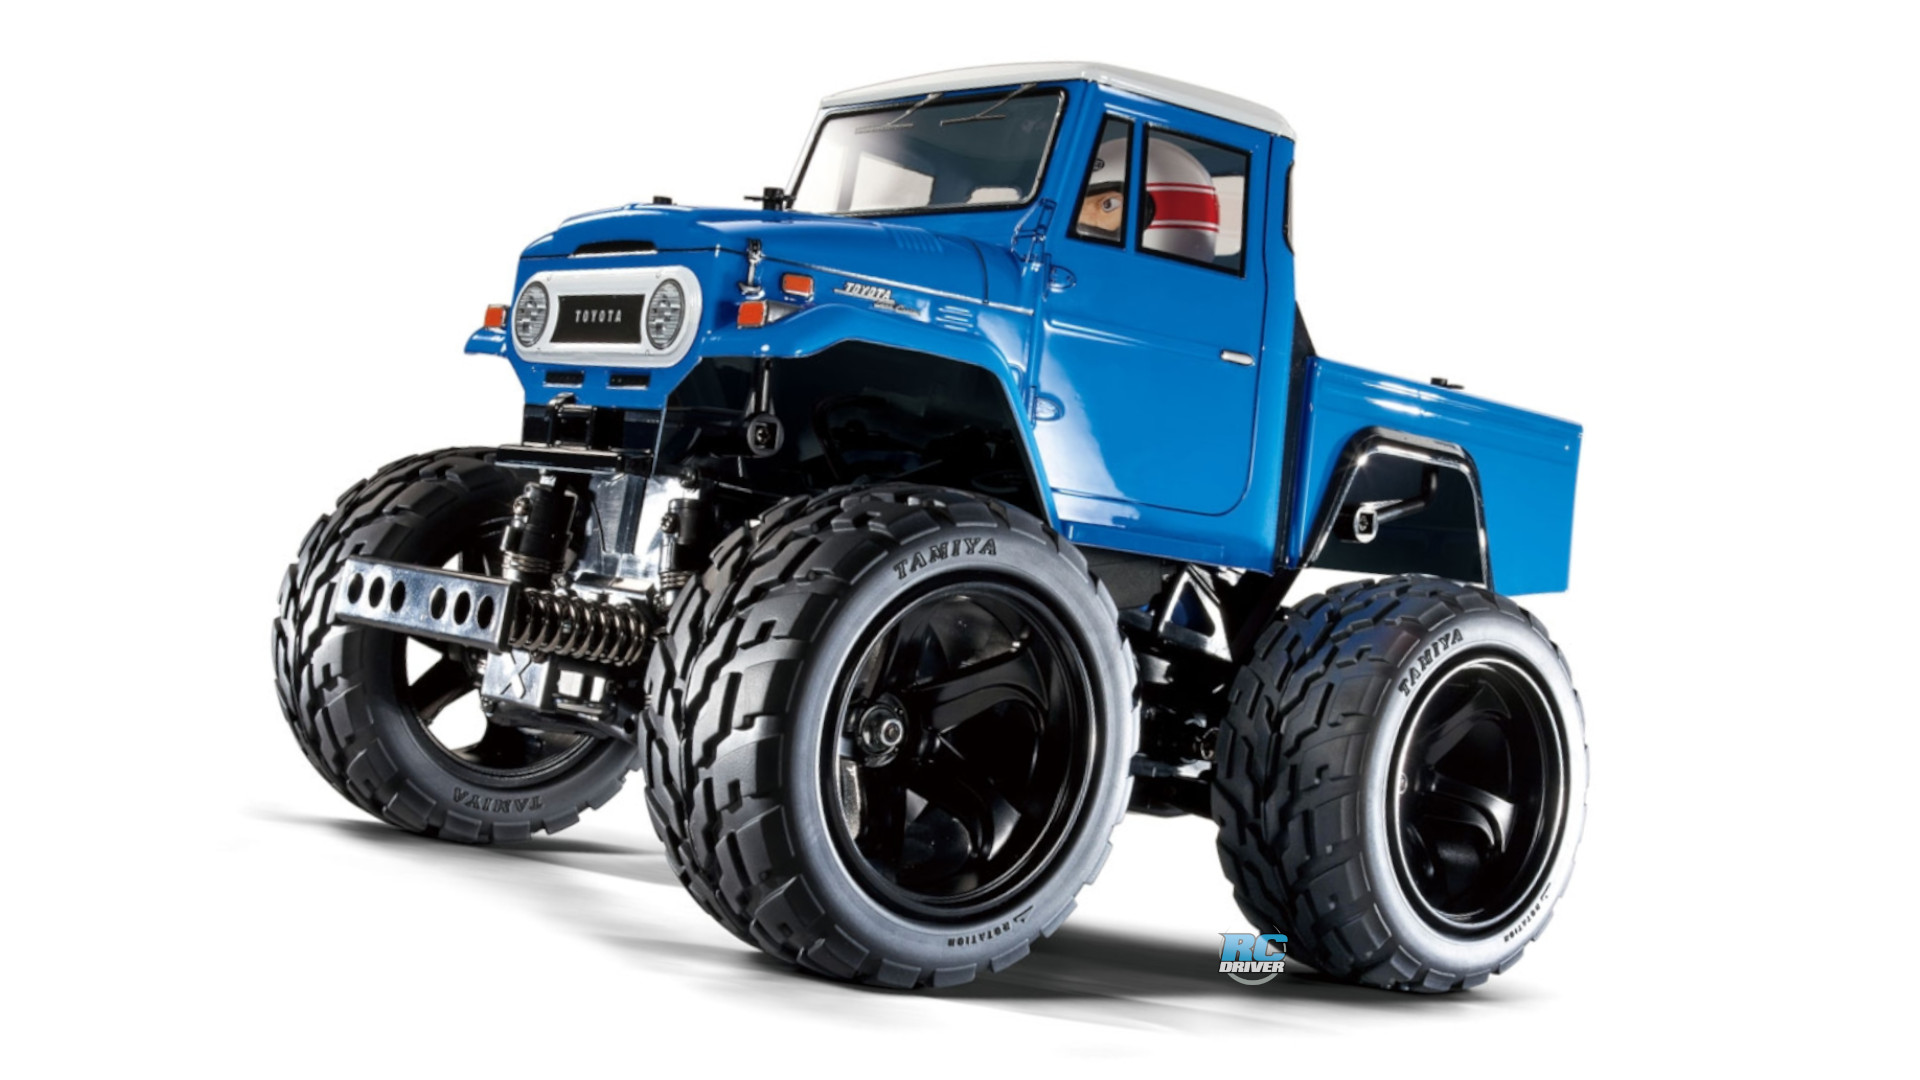 Top 5 Tamiya hop-up options for the Toyota Land Cruiser 40